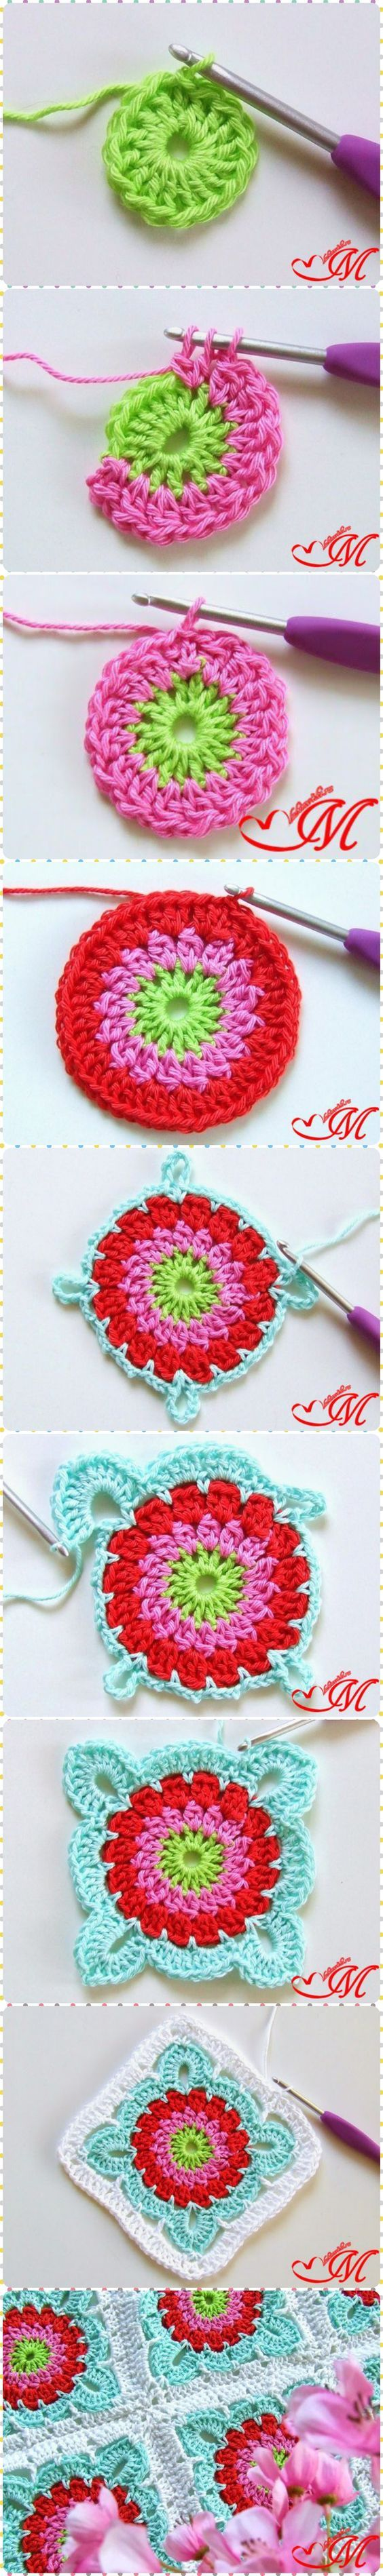 How to Crochet Pretty Granny Square Blanket with Free Pattern: